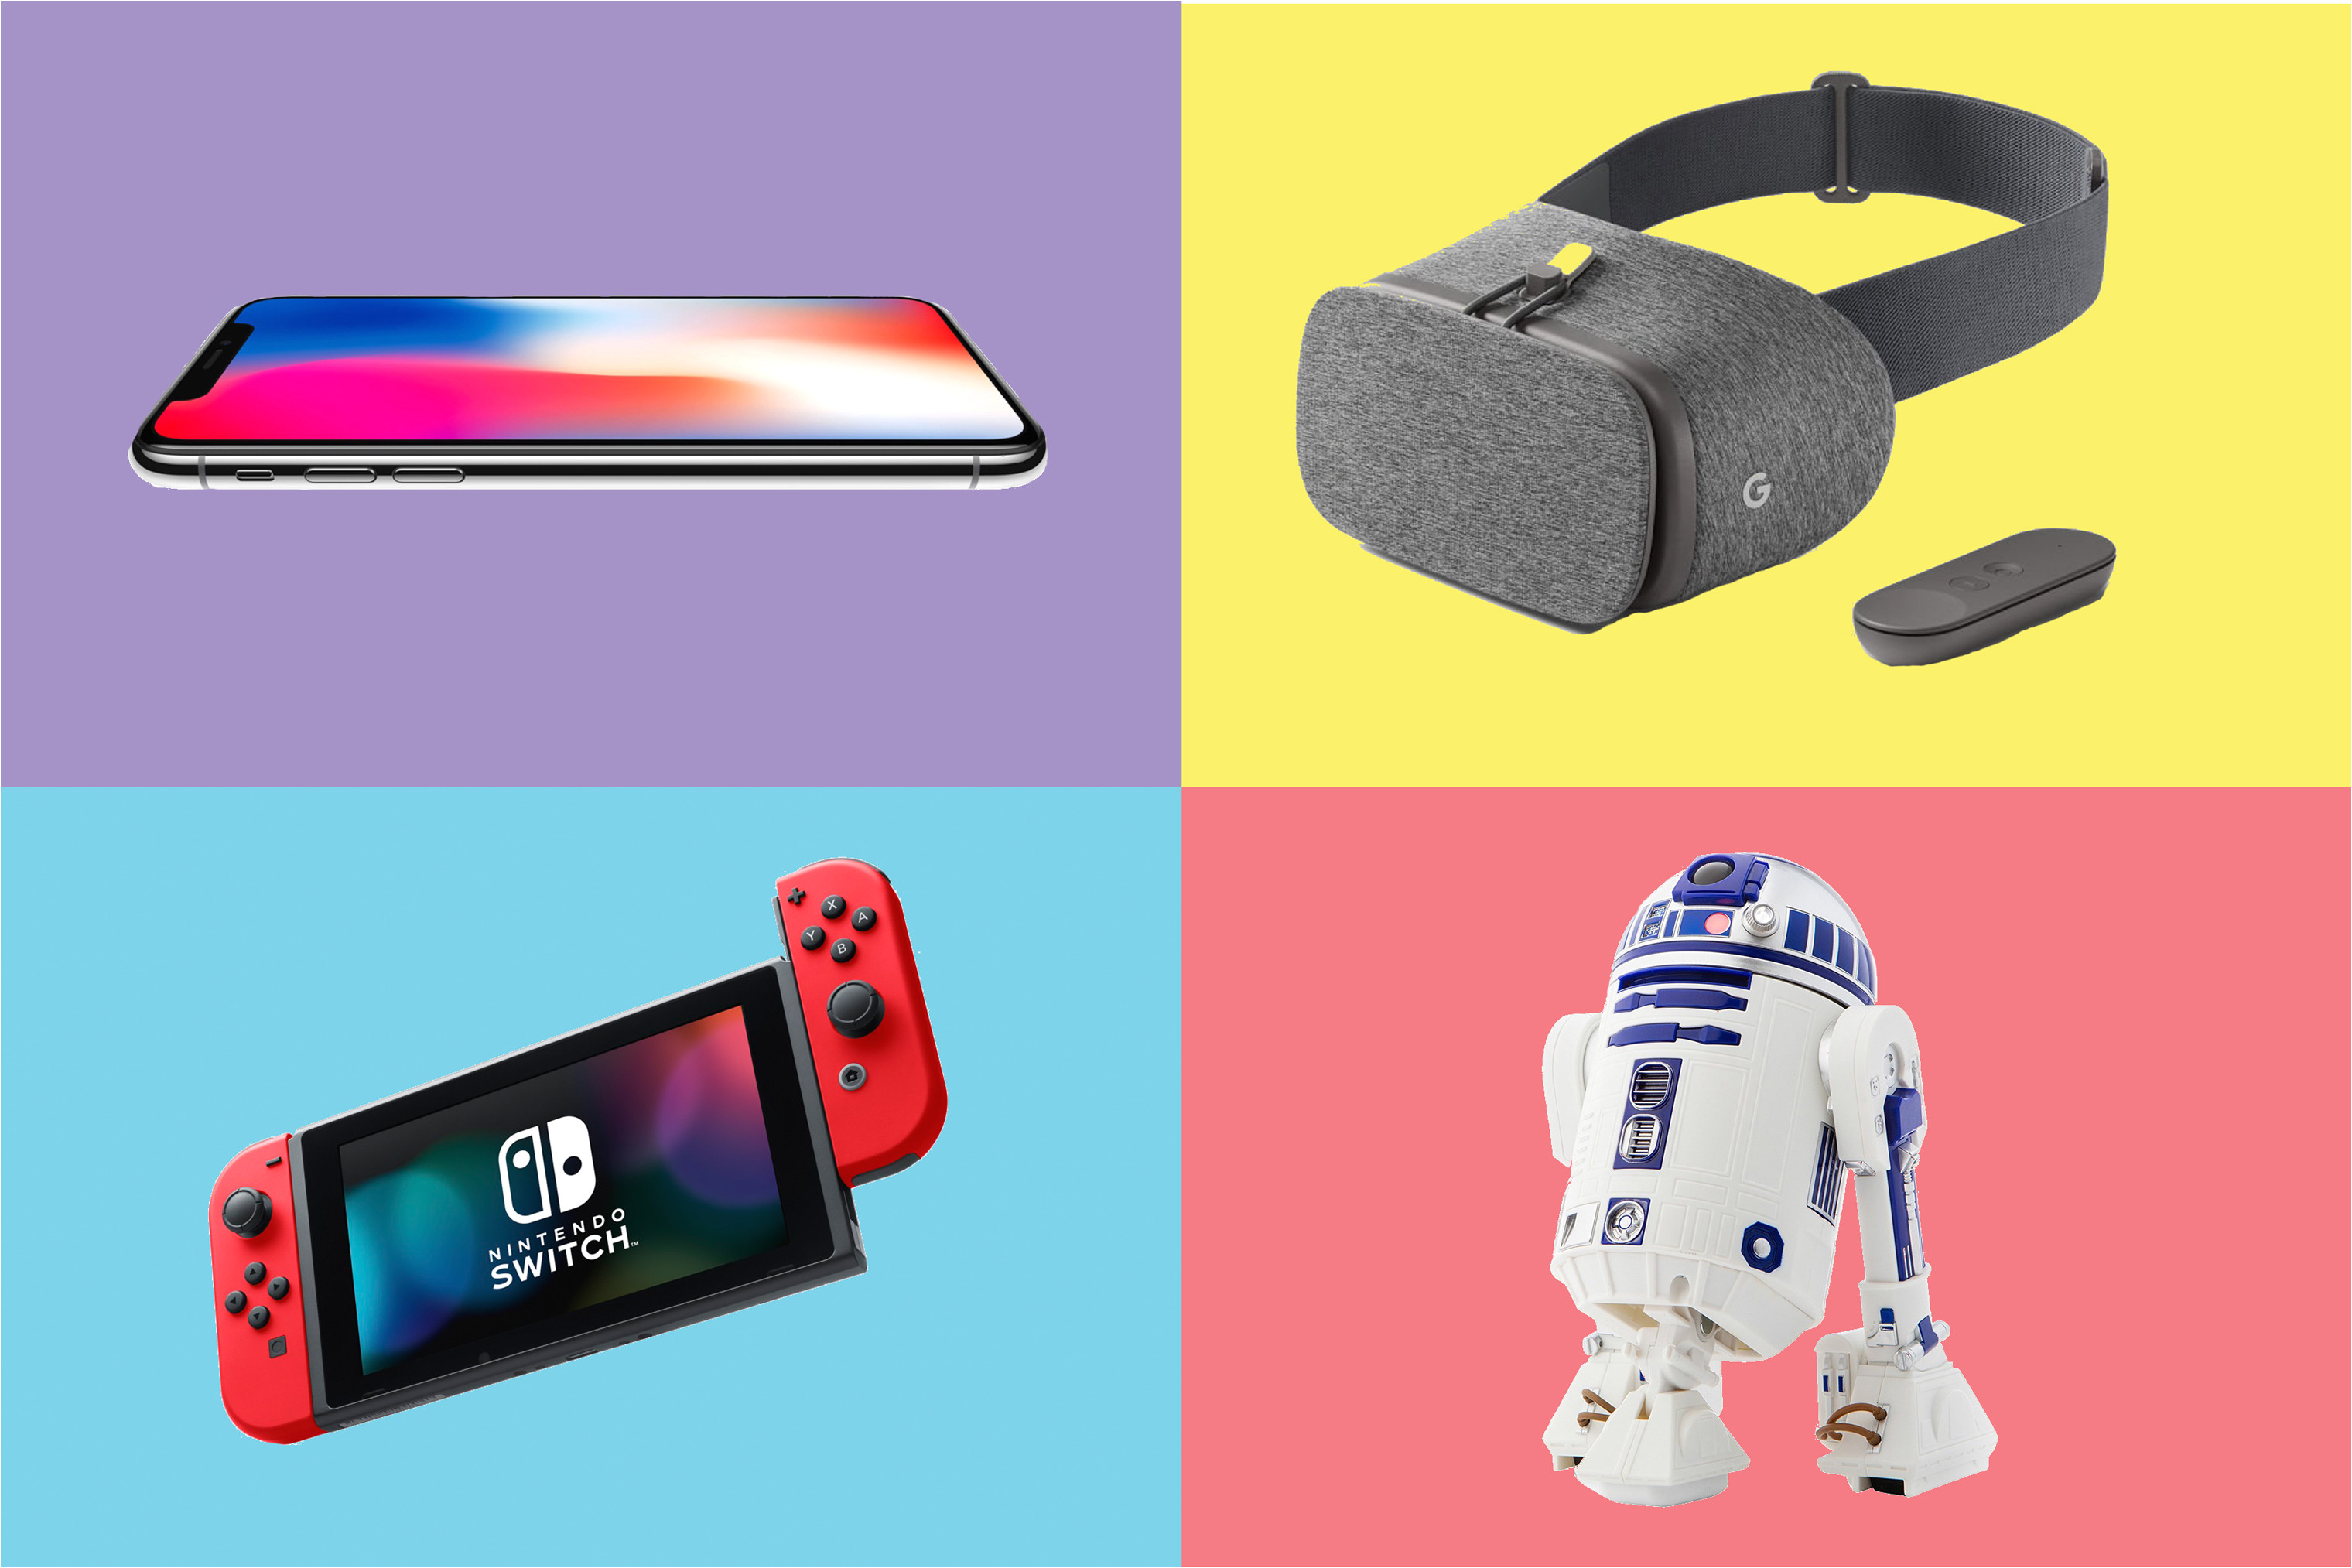 30 ultimate tech gifts for every person on your holiday shopping list